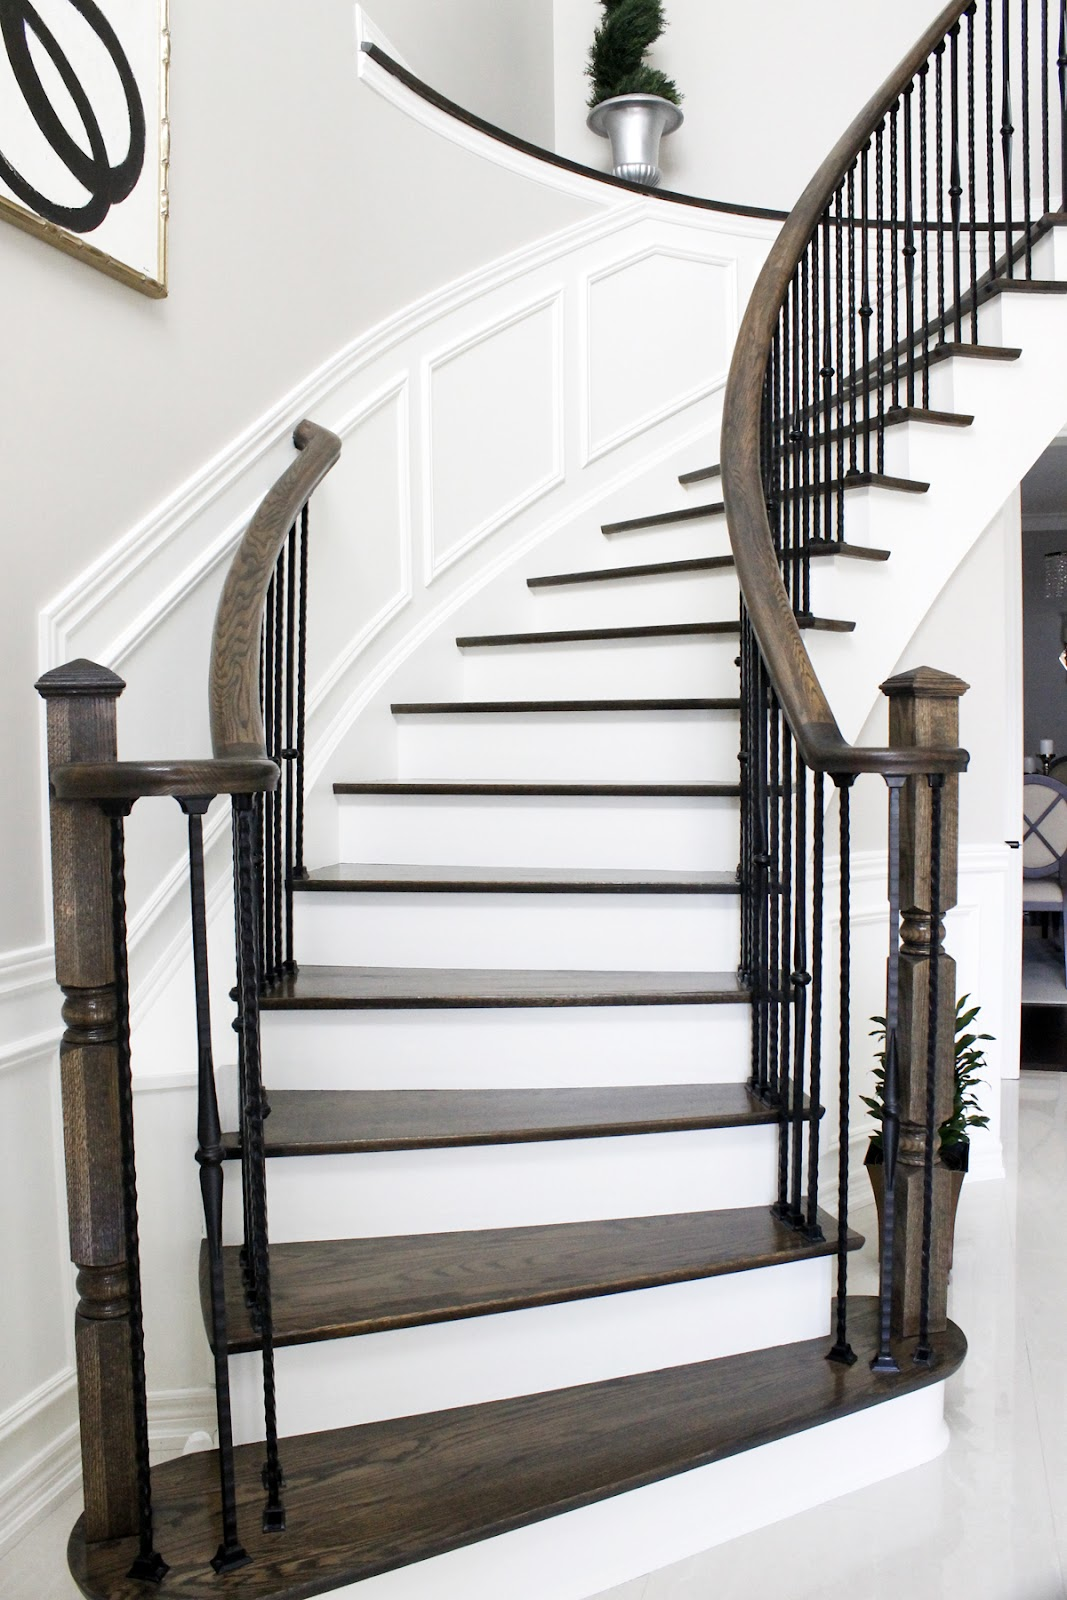 Am dolce vita staircase ledge decorating ideas for Arched staircase